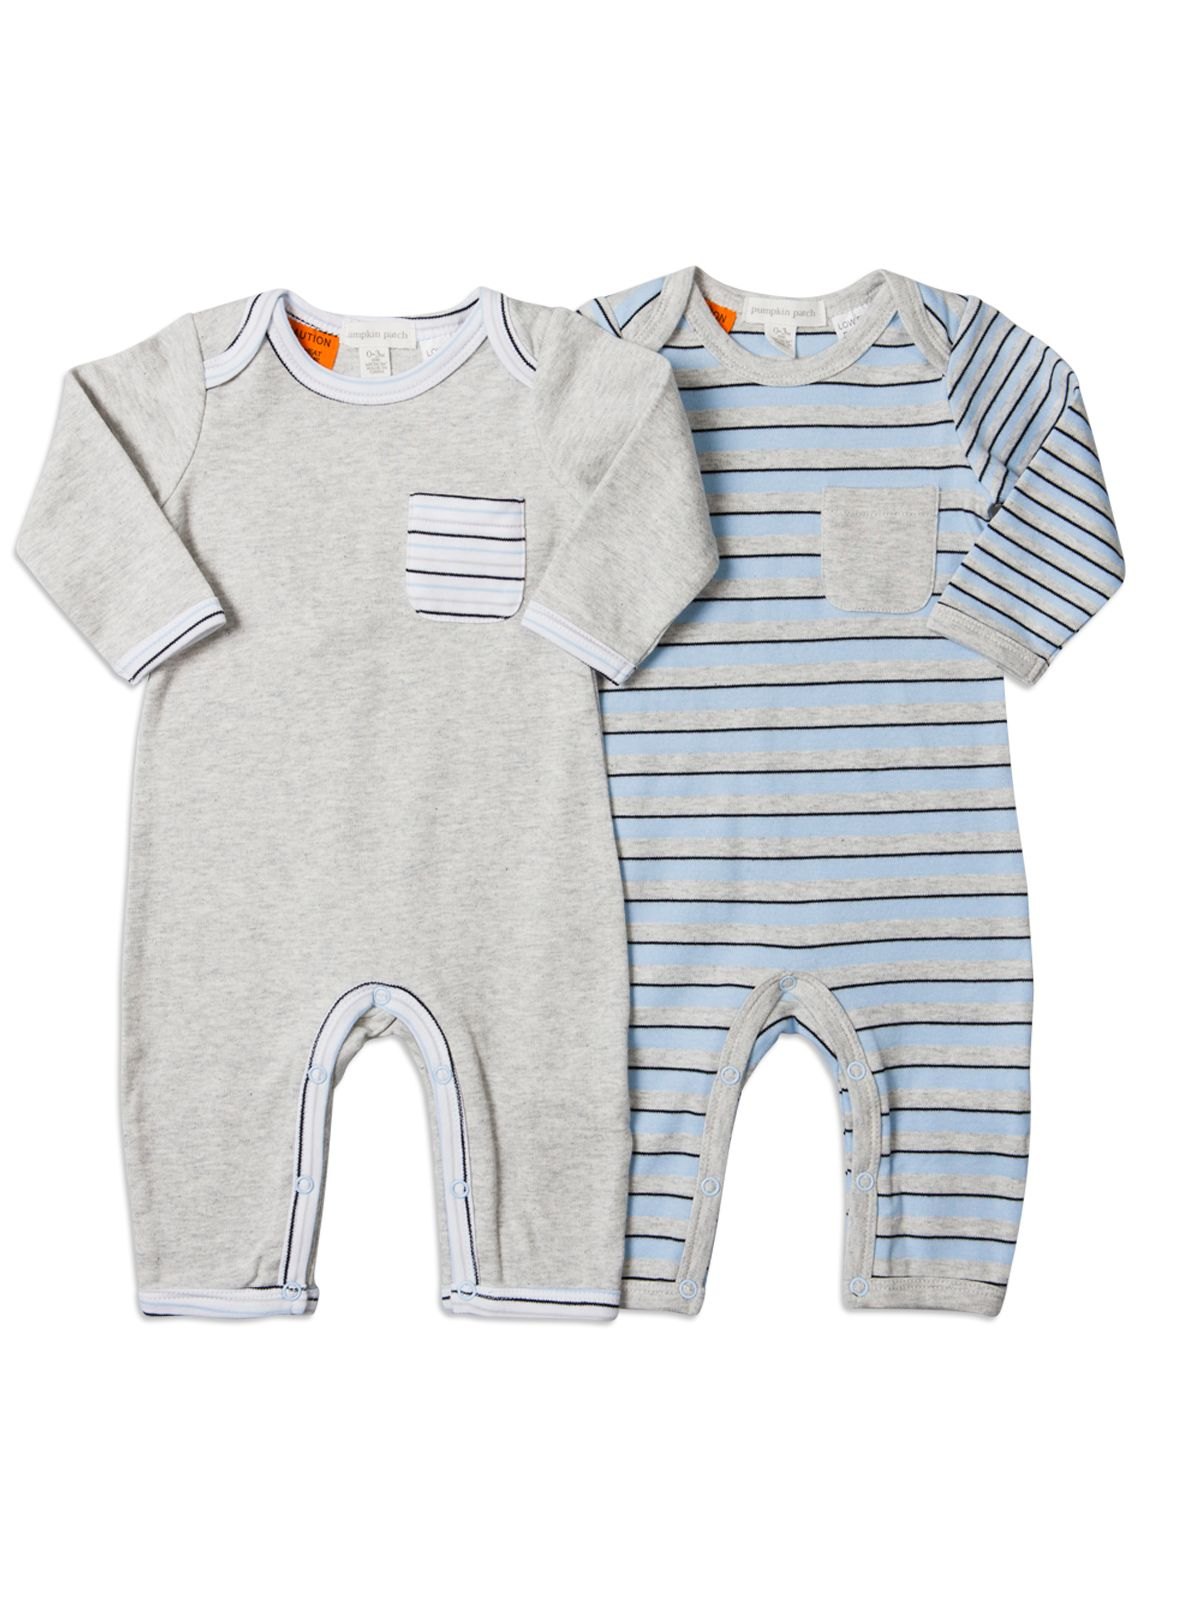 Pumpkin Patch Baby boys 2 pack all in ones